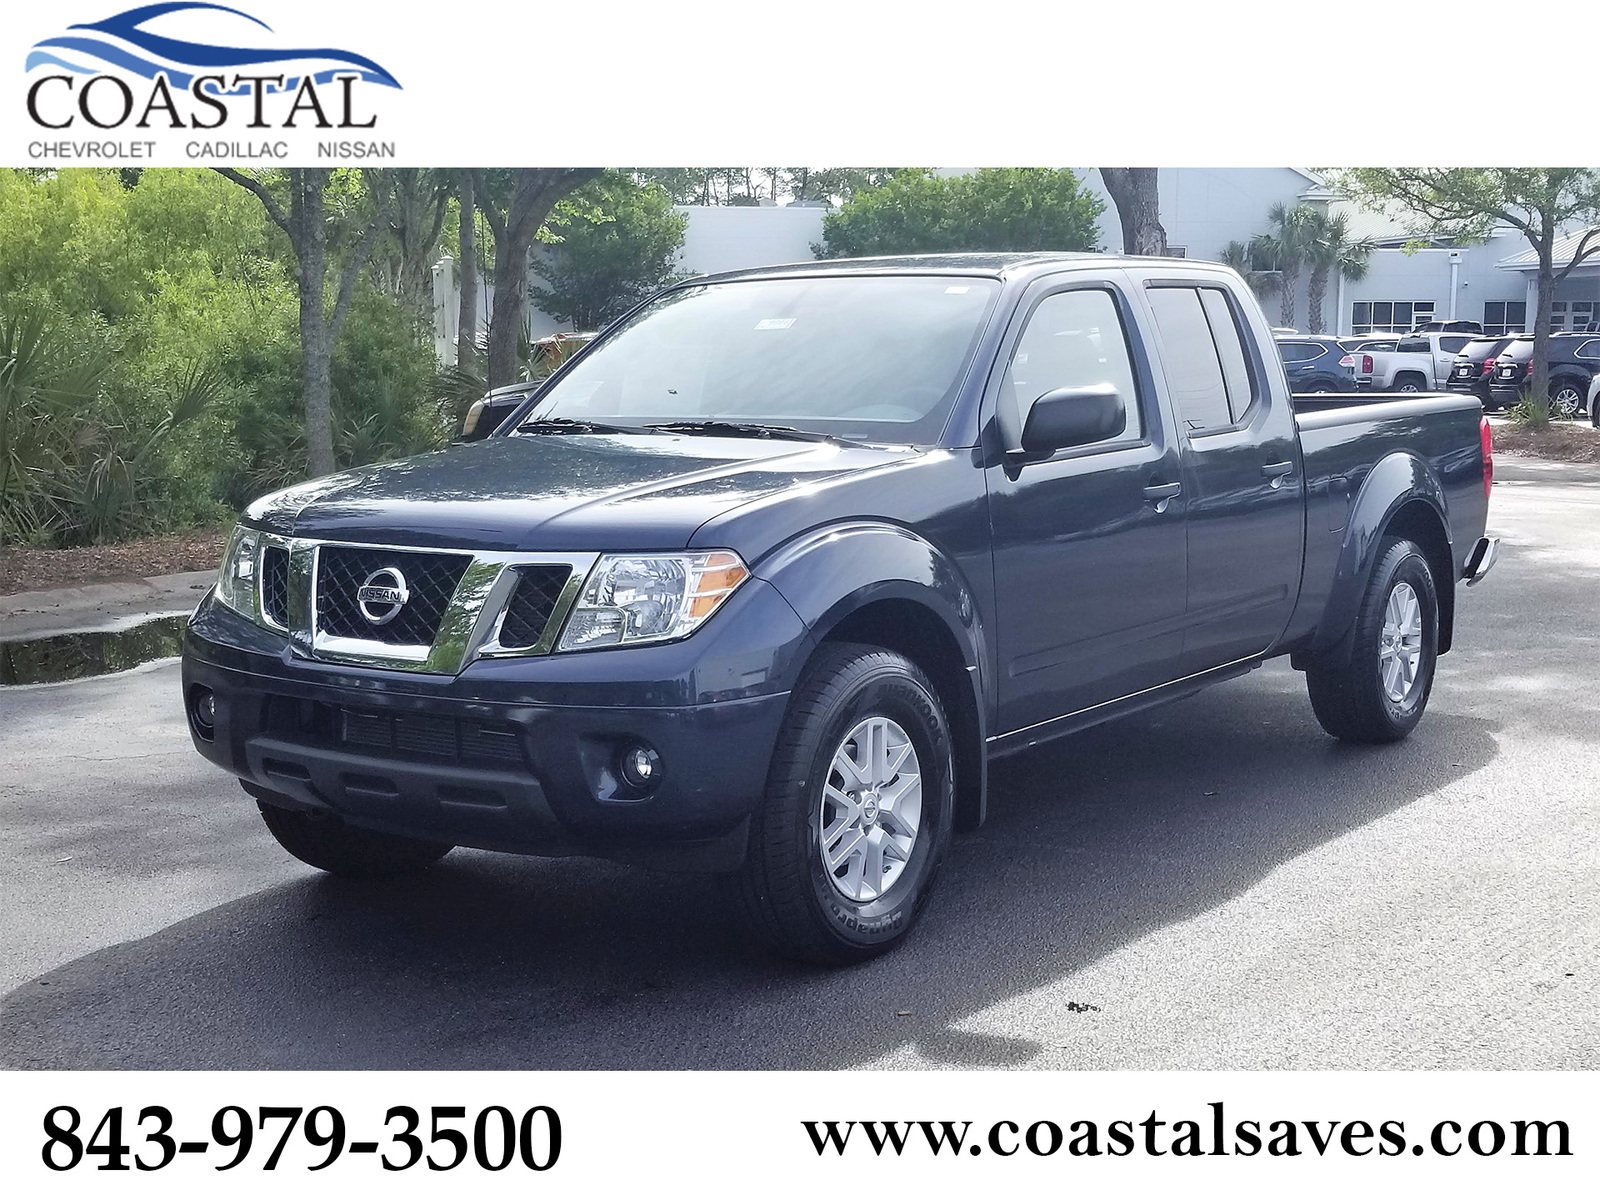 New 2019 Nissan Frontier Crew Cab 4x4 Sv Auto Long Bed